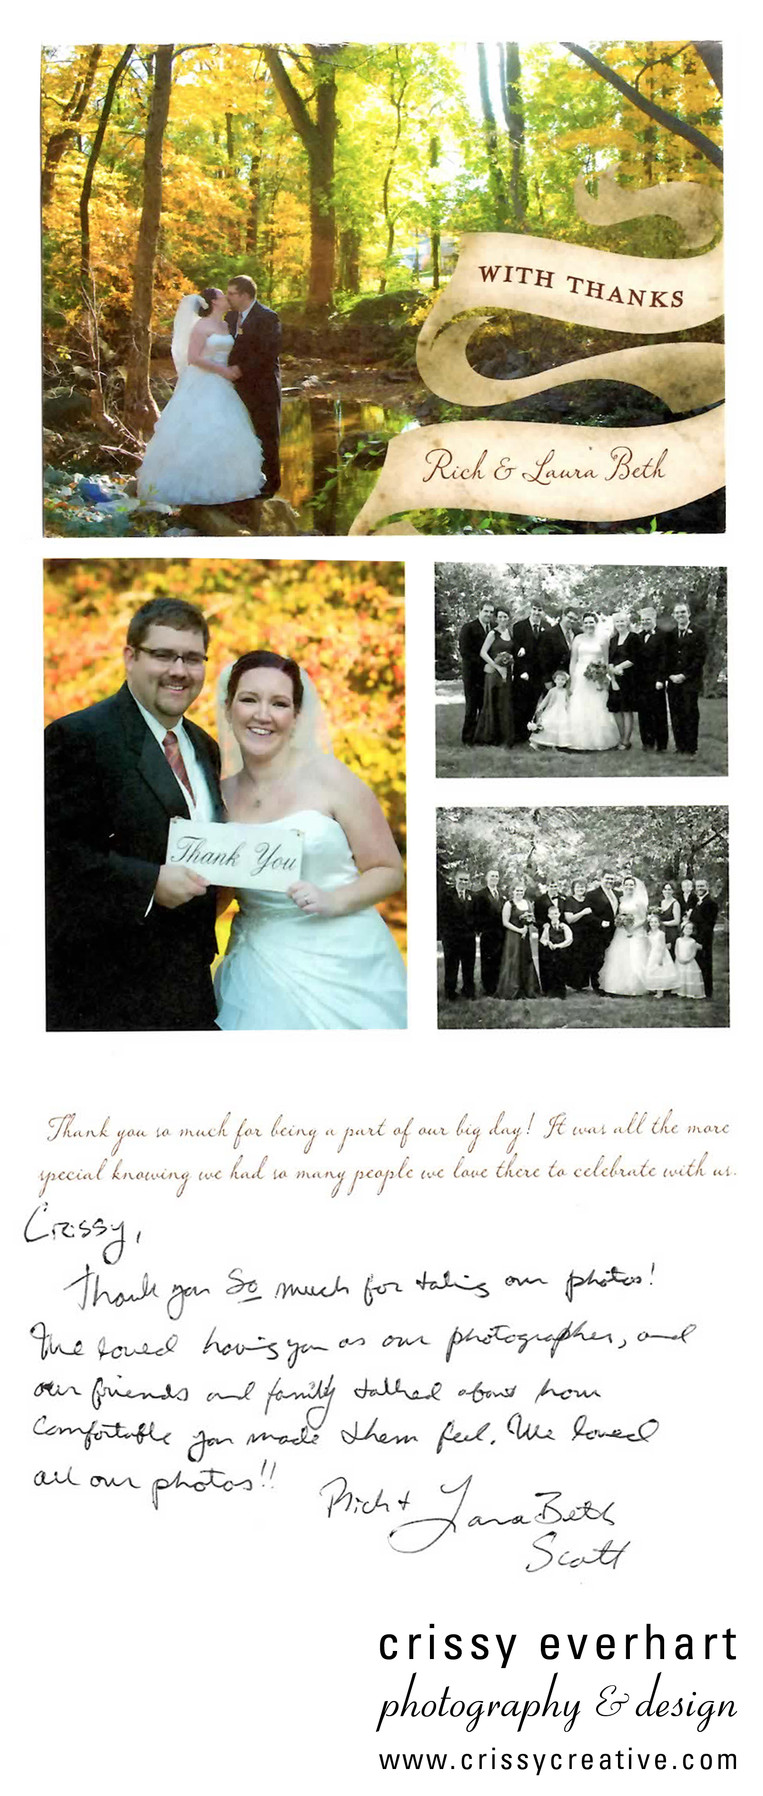 Rockwood Park wedding thank you note